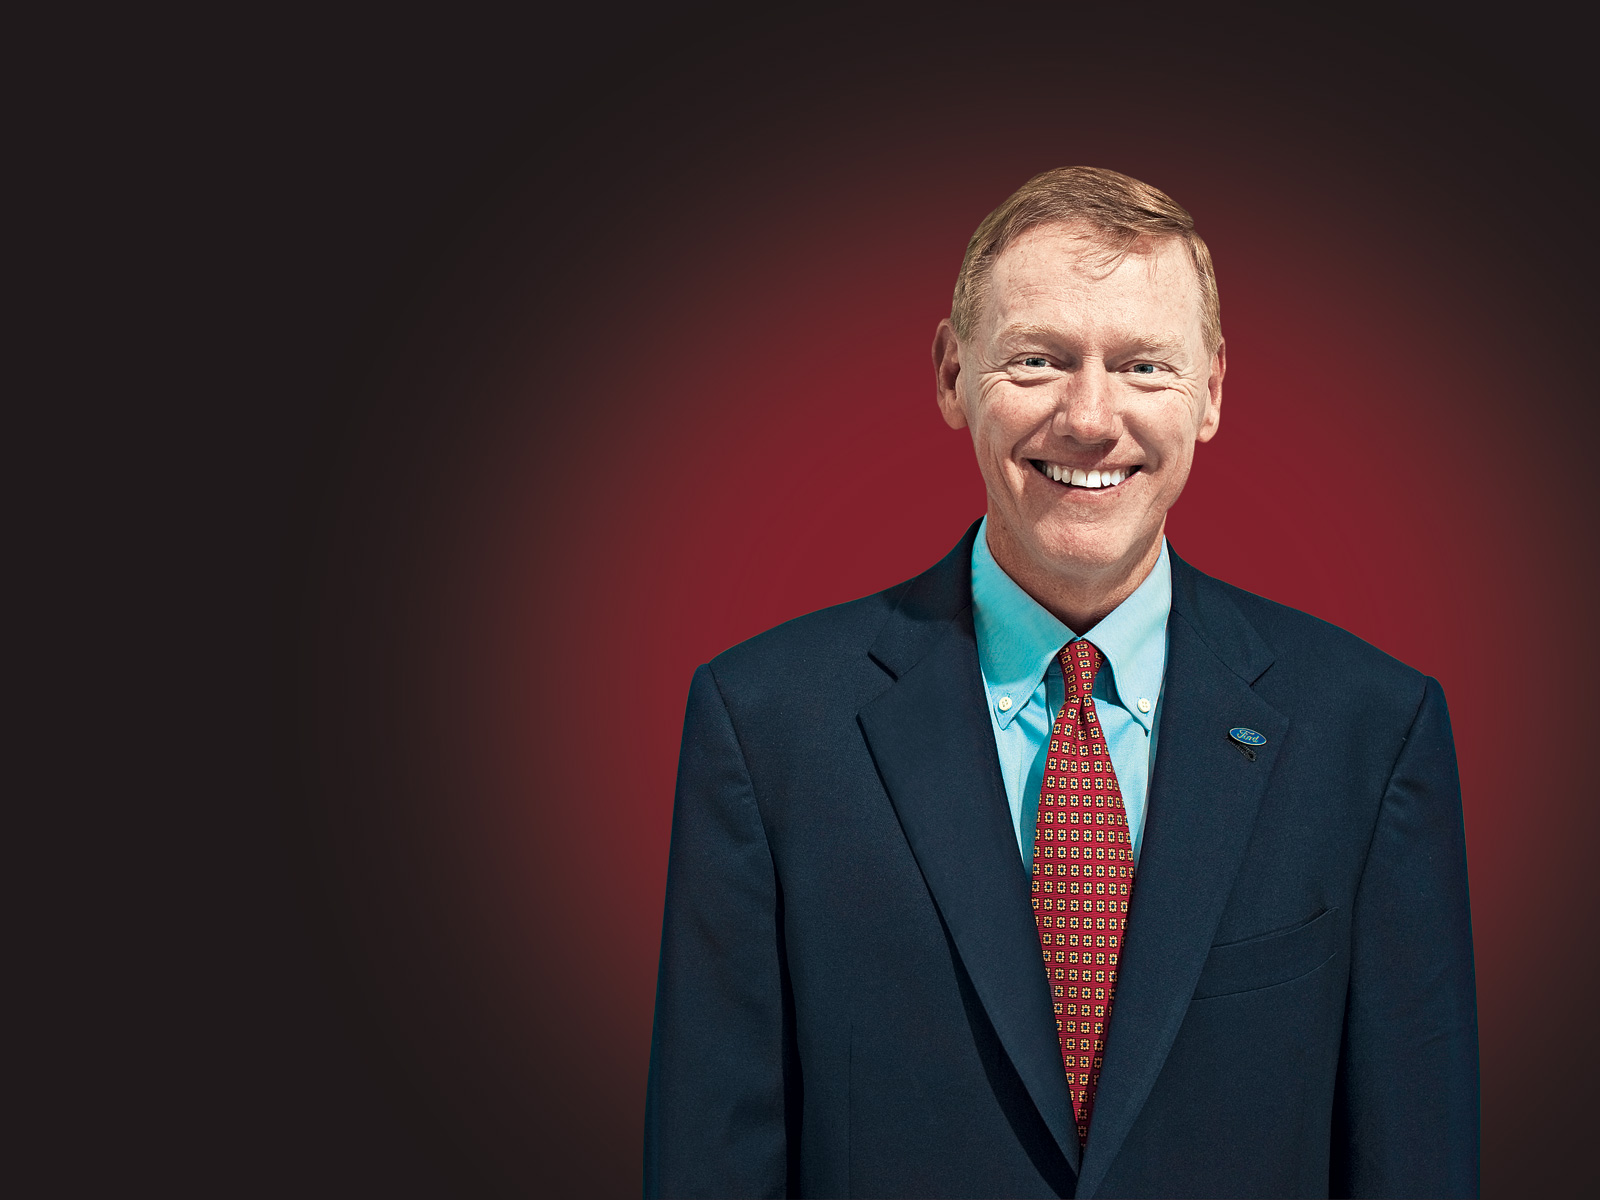 Alan mulally ceo ford motor company 2010 man of the for Ford motor company alan mulally